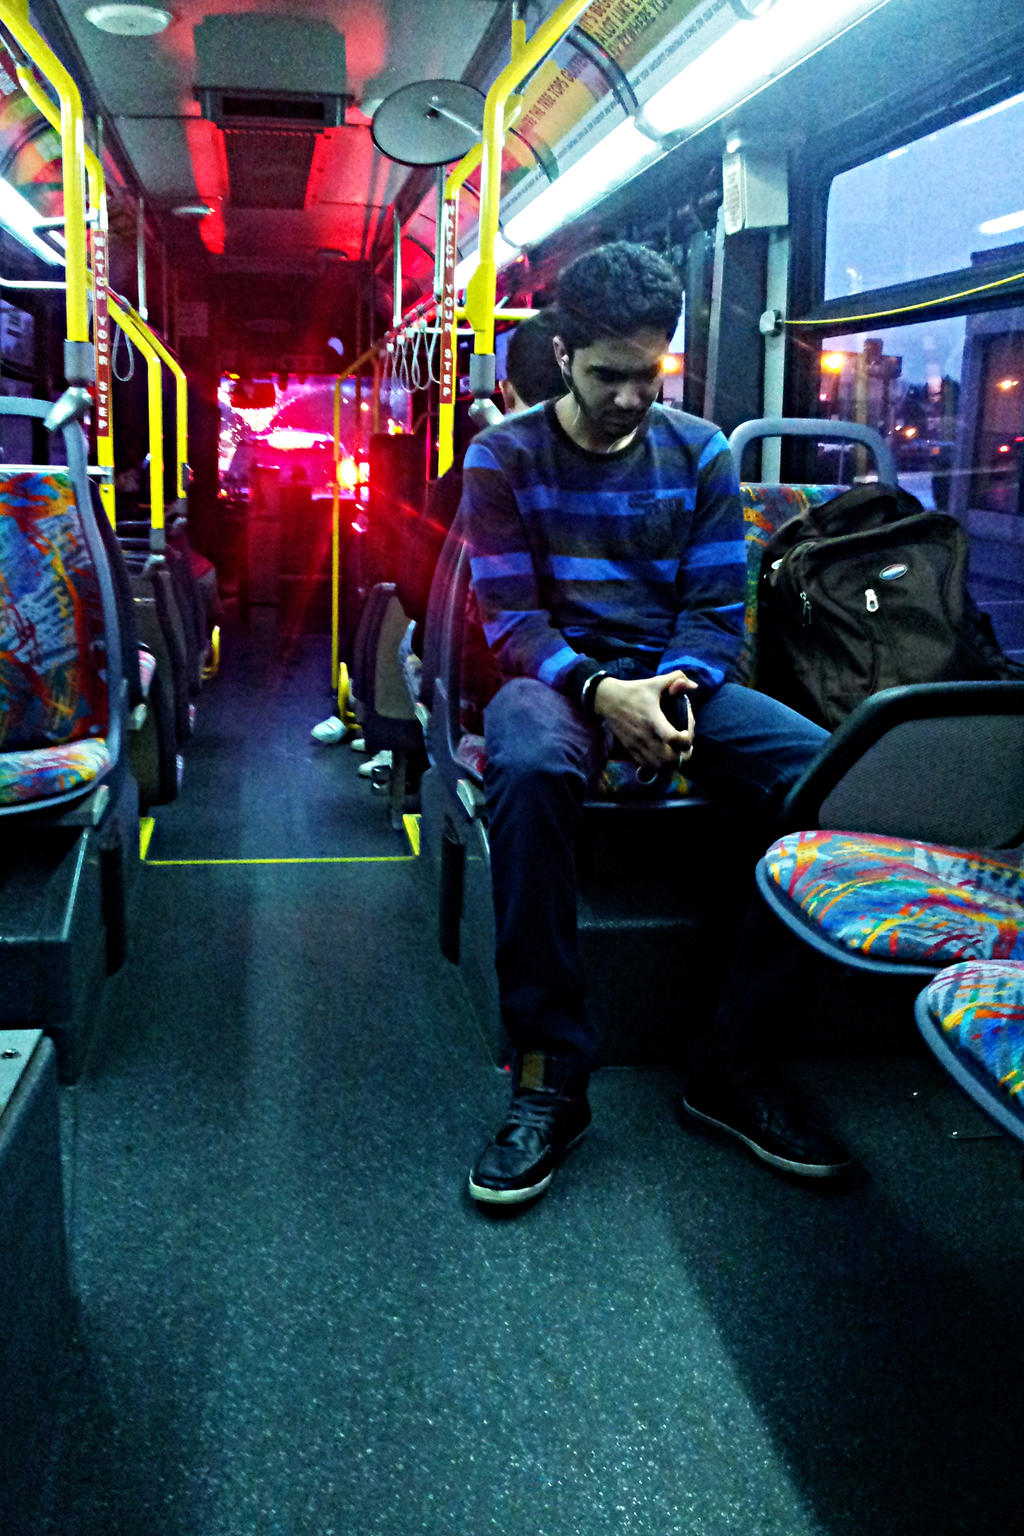 Picture on the bus